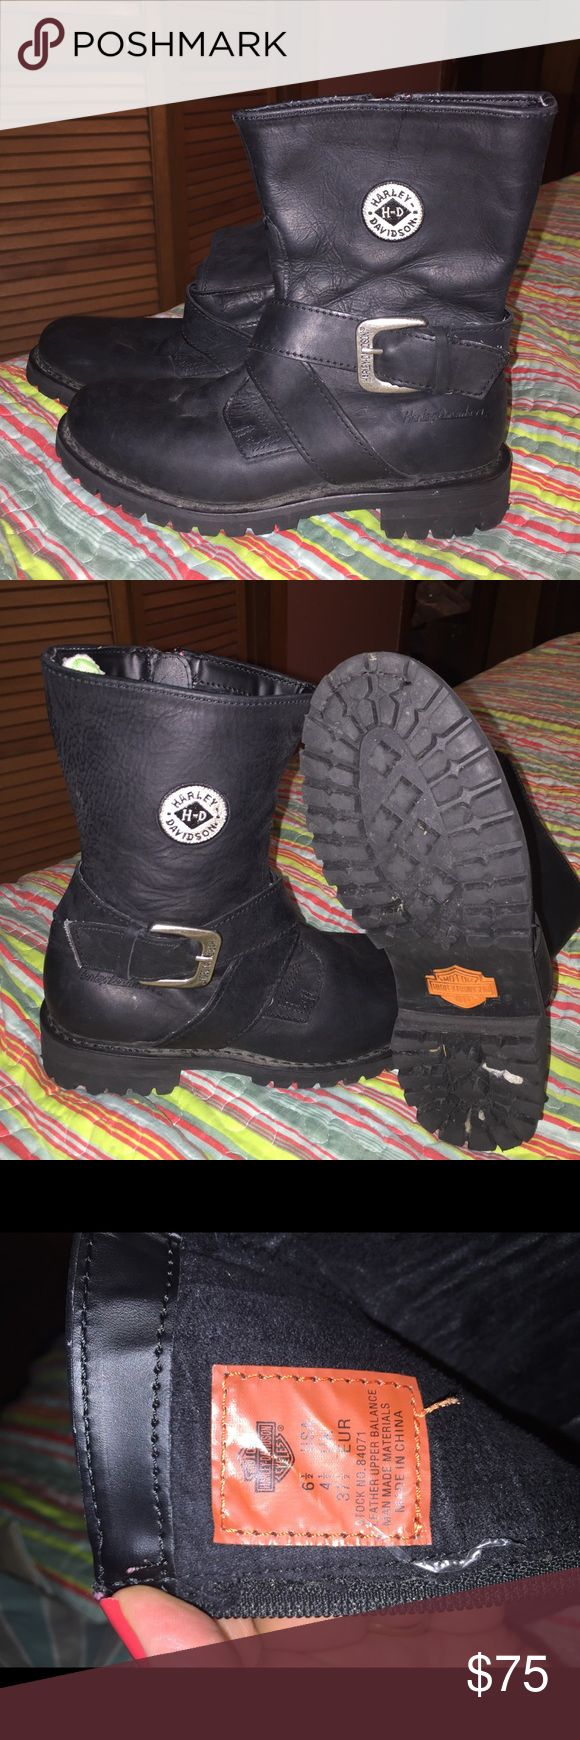 Harley Davidson ladies leather boots Black leather size 6 1/2. EUC! White look in pictures is dust from not being worn. Some gravel in bottom of heel. Will remove before shipping. Open to offers! Harley-Davidson Shoes Heeled Boots